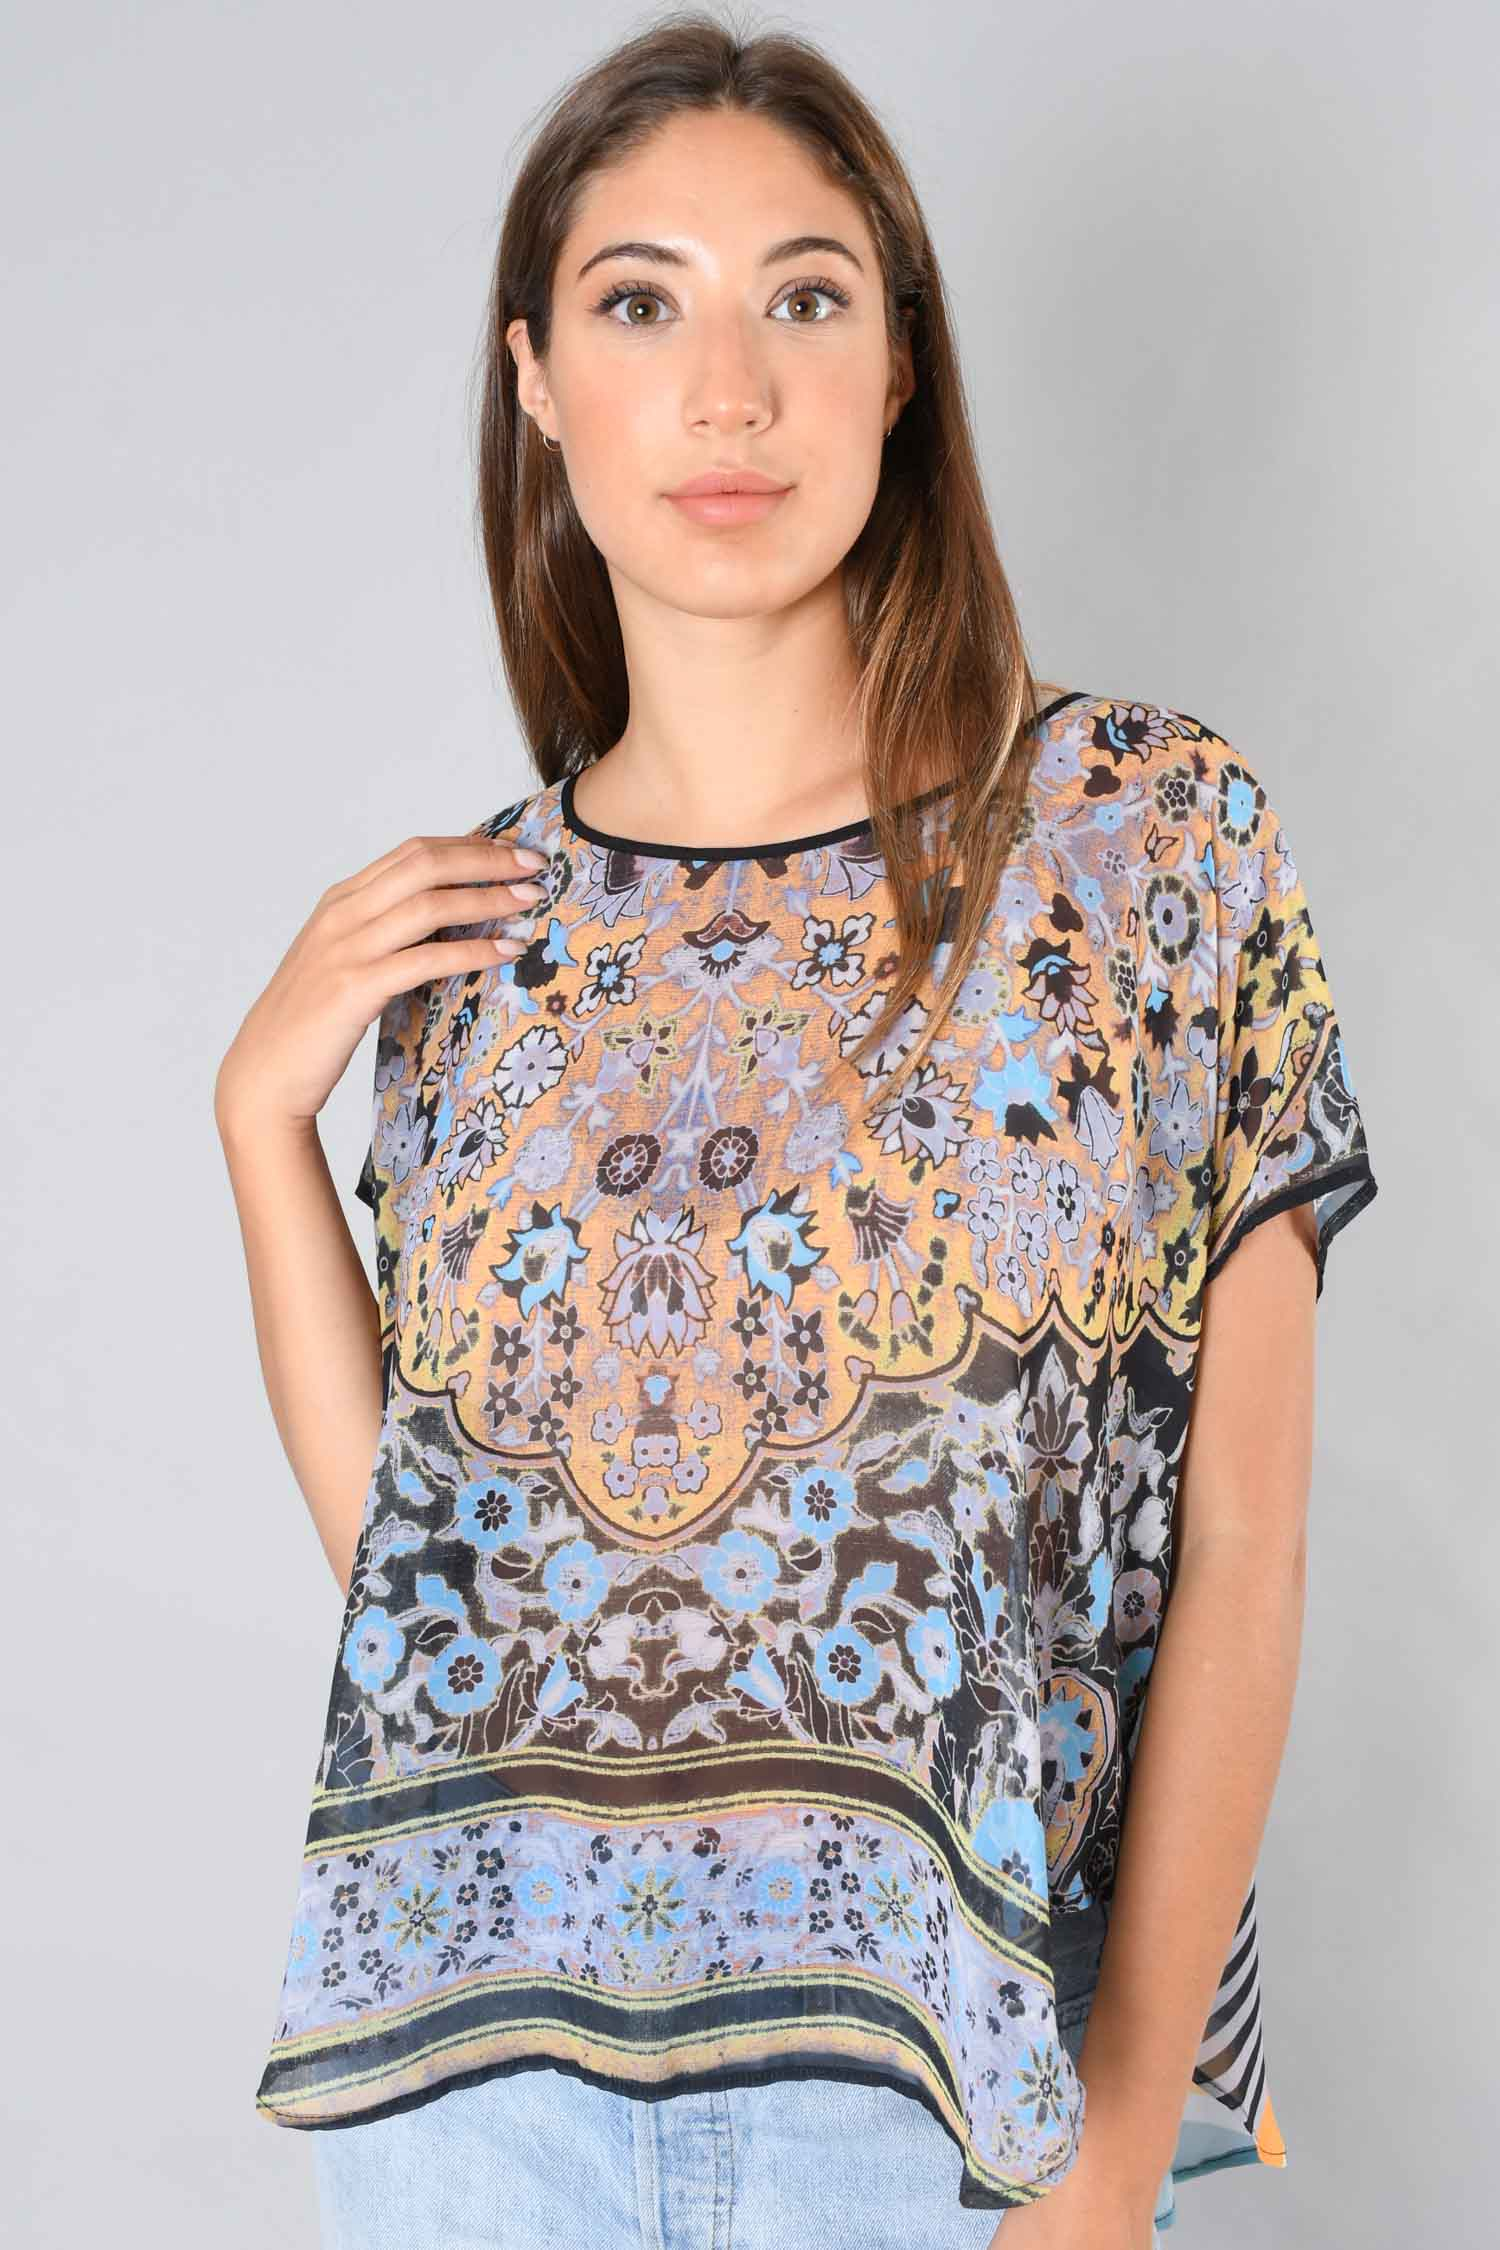 Clover Canyon Blue and Yellow Printed Sheer Poncho Size M